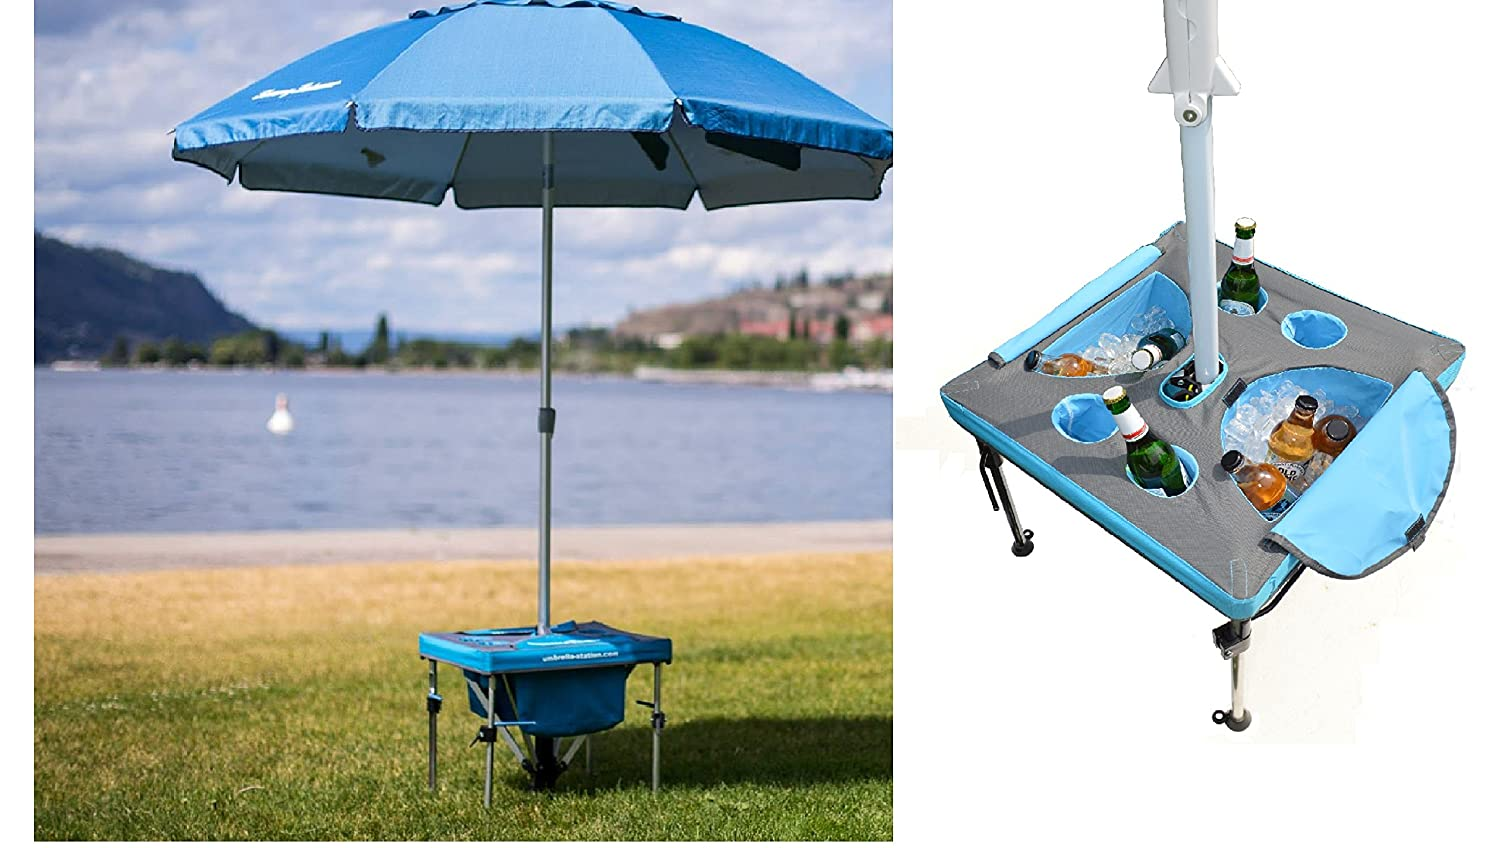 Amazon.com: Umbrella Station with Beach Umbrella - Anchor your Beach  Umbrella, cool your drinks in the ice cooler. Works with all beach umbrellas  including ...